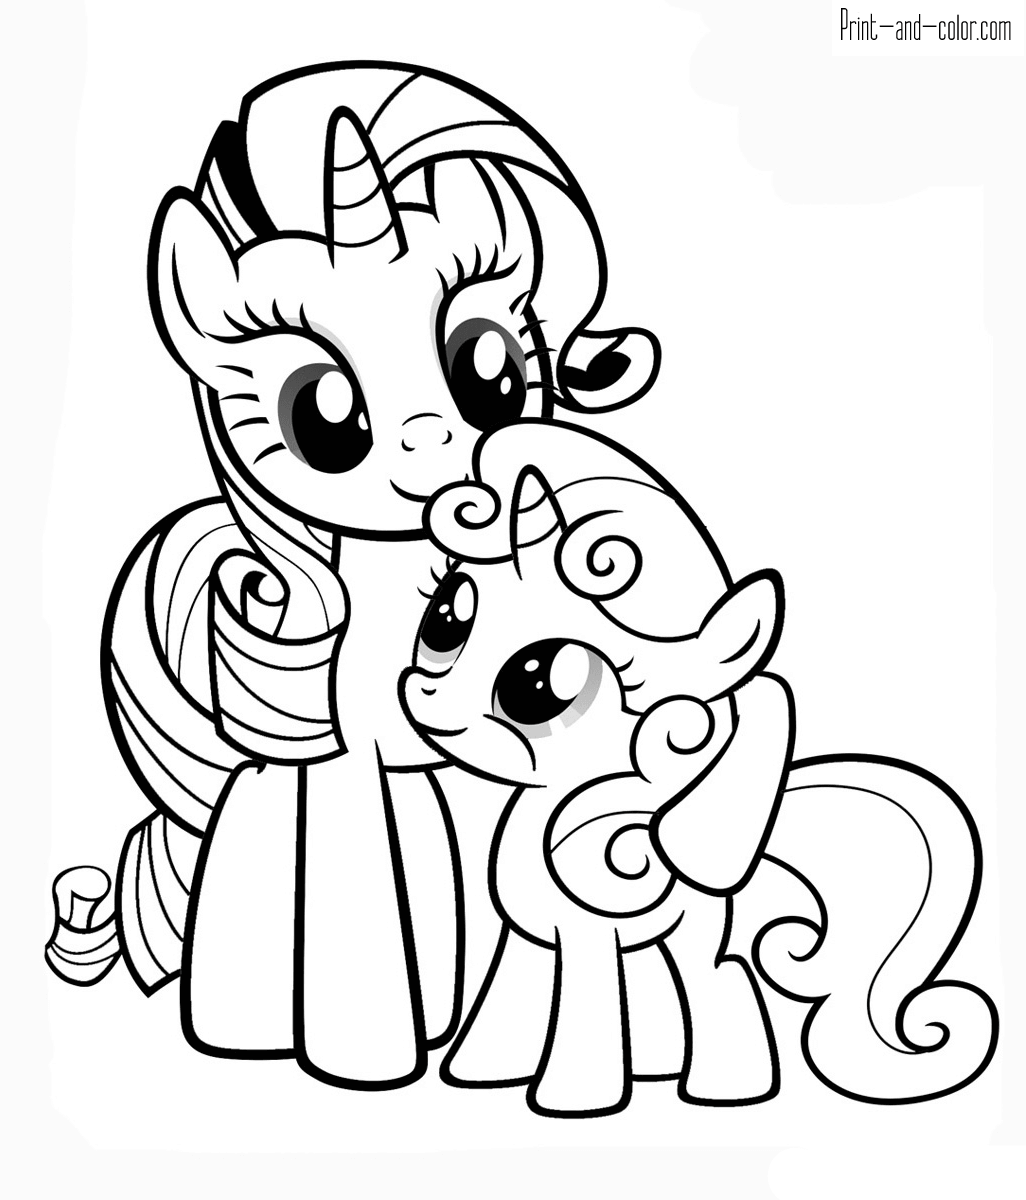 mlp colouring new cute my little pony coloring pages new coloring pages mlp colouring